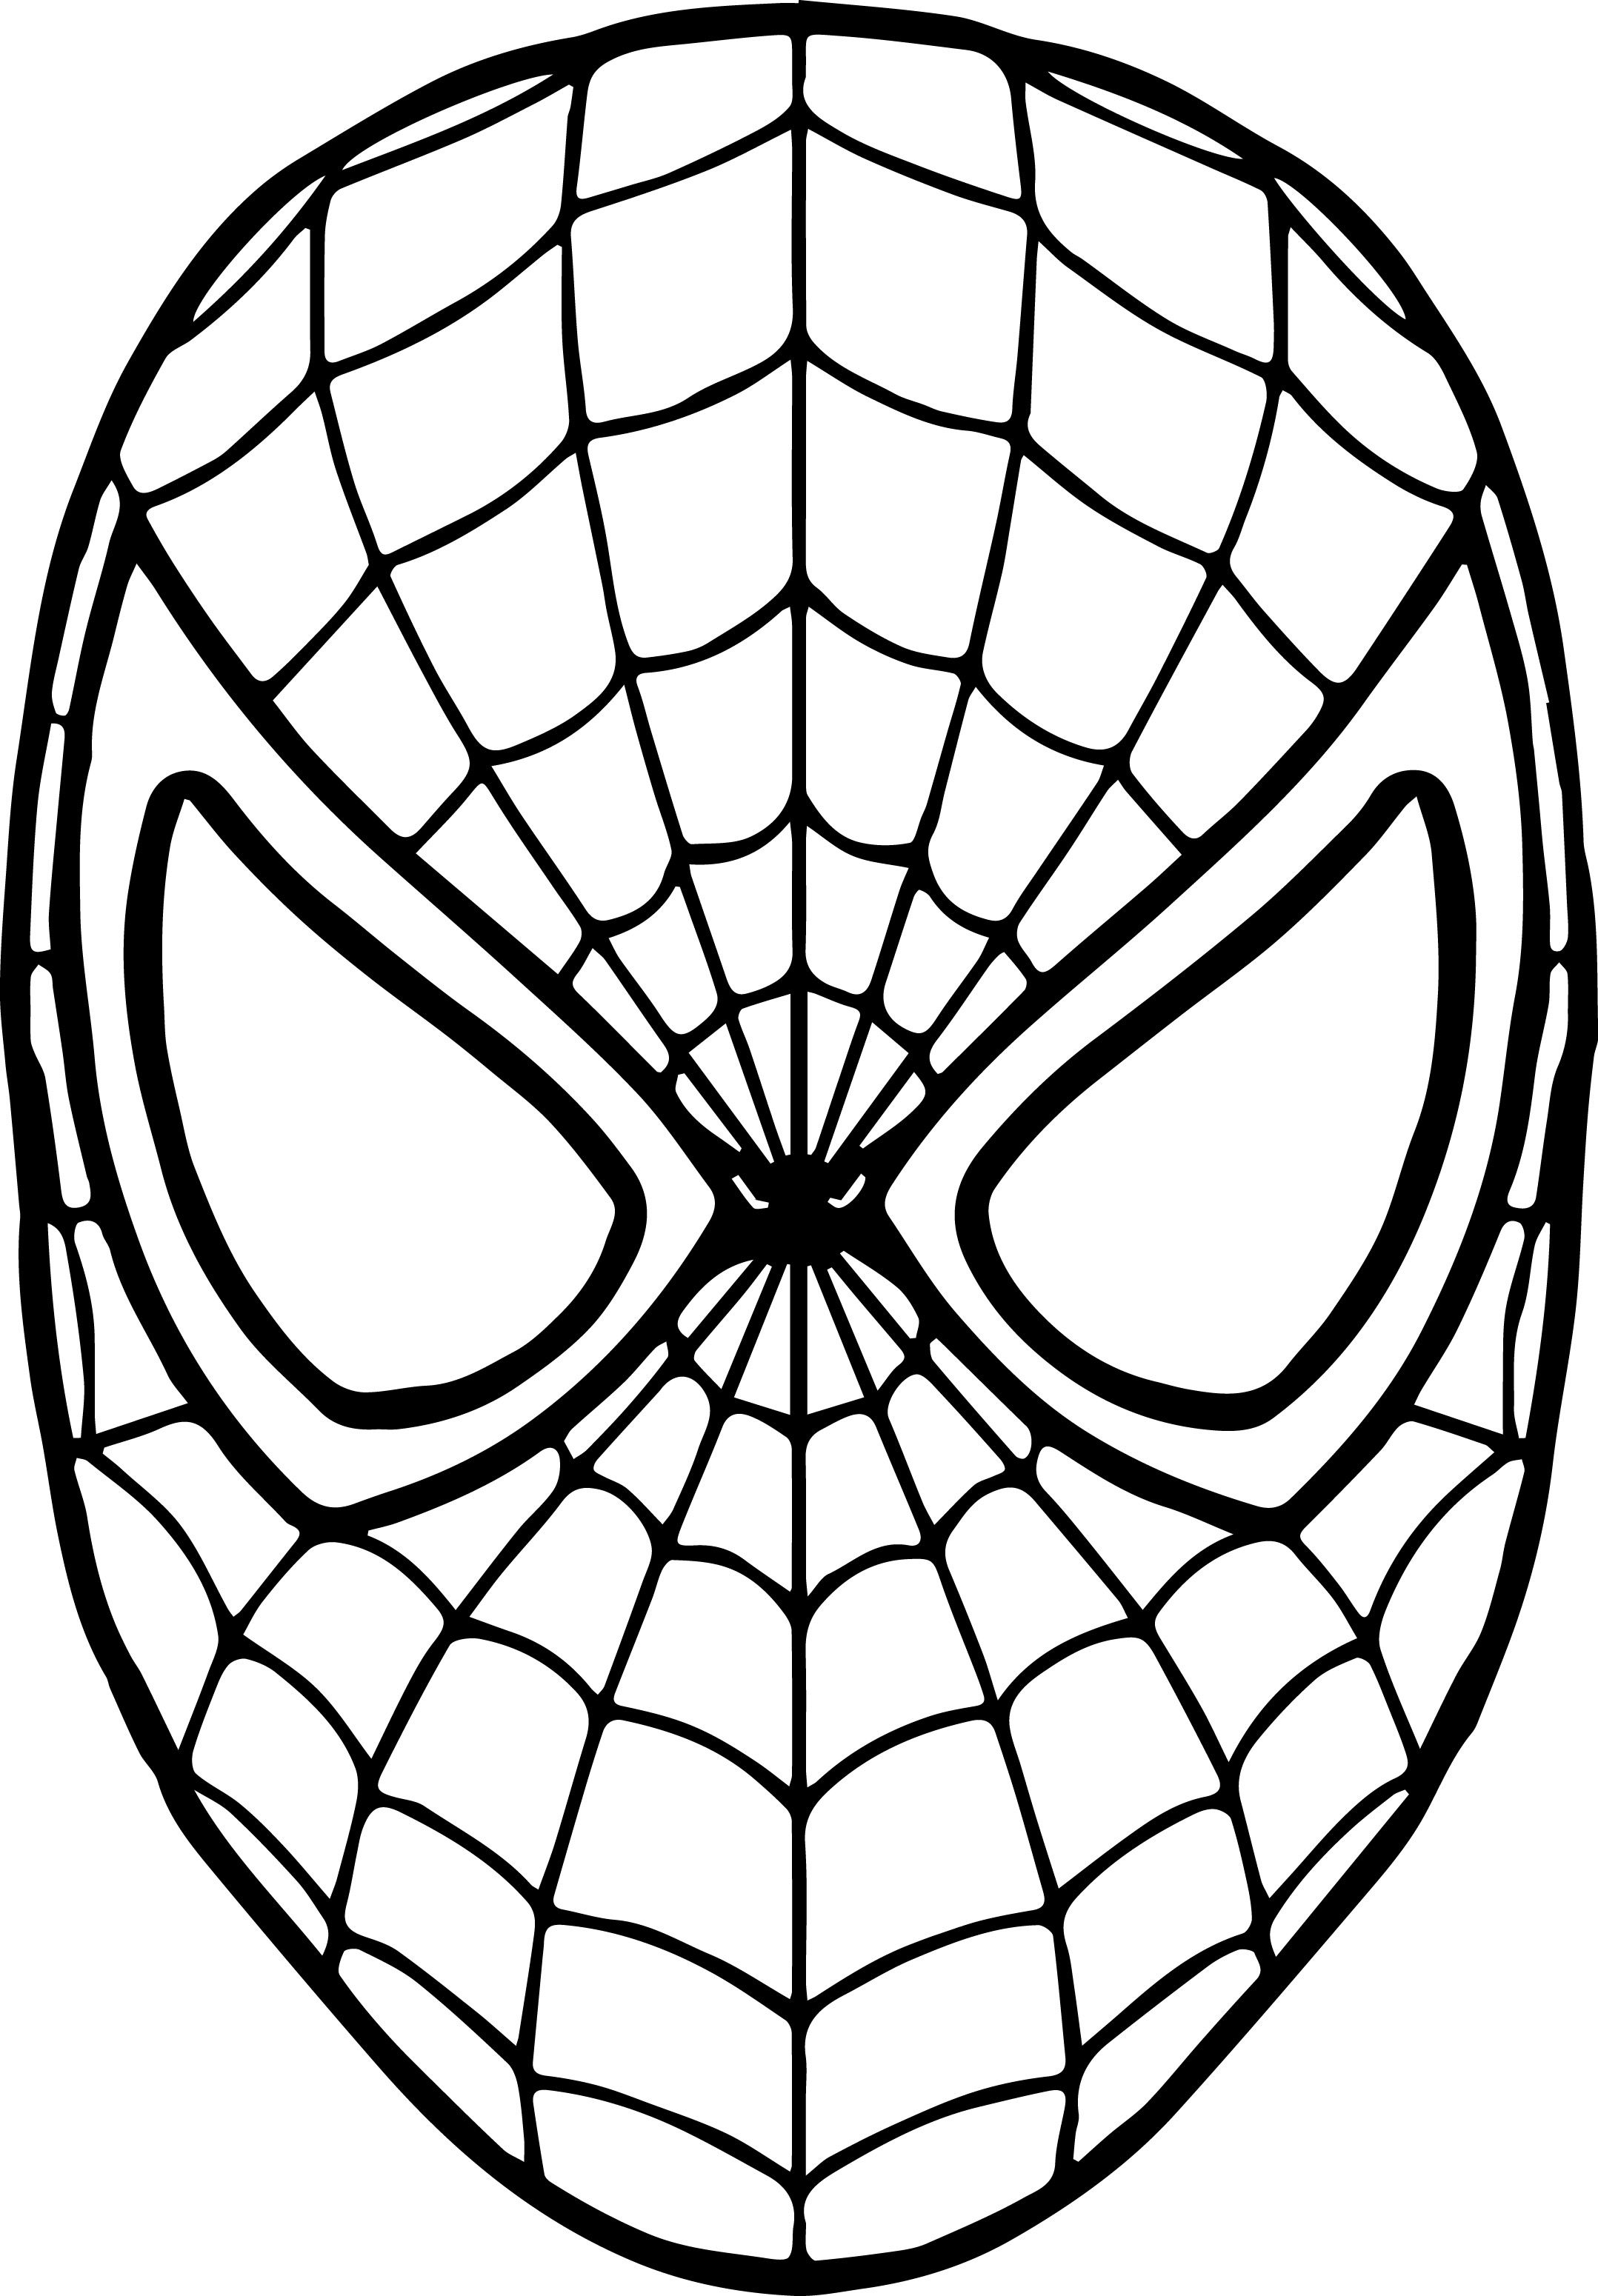 spider man coloring sheet coloring pages spiderman free printable coloring pages sheet spider man coloring